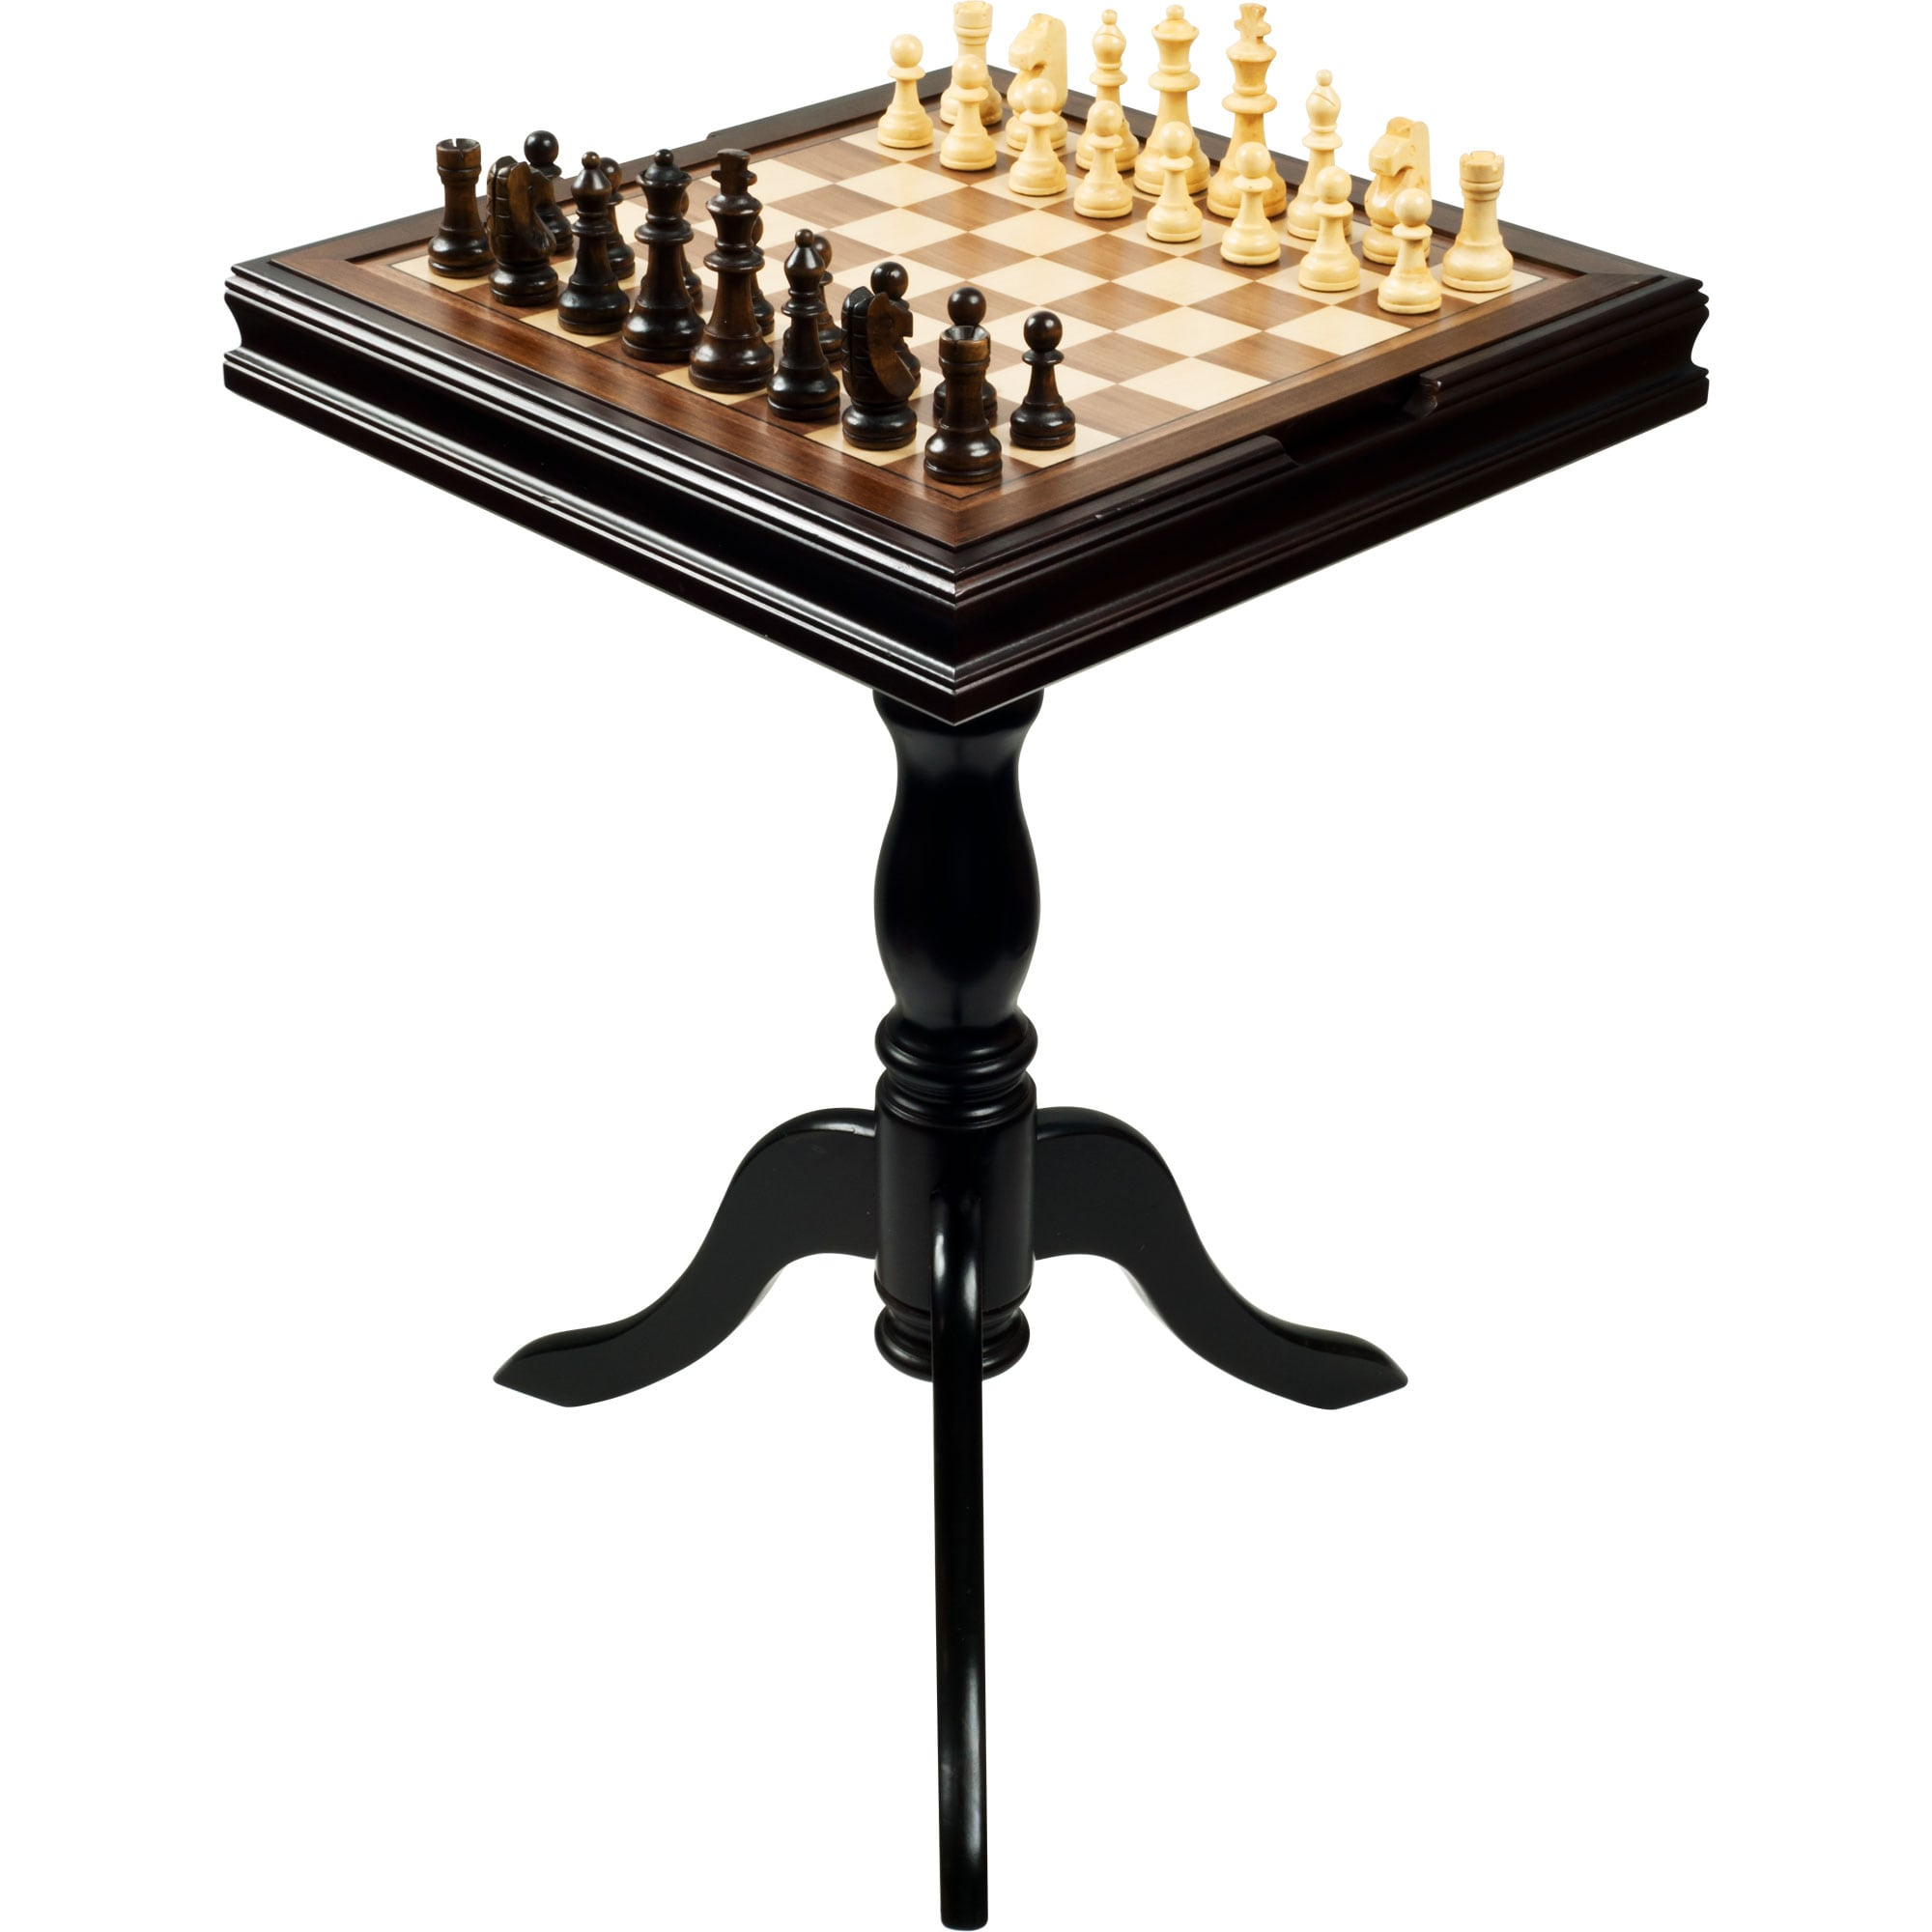 Chest Game Set Chess And Backgammon 27 Inch High Table Free Shipping